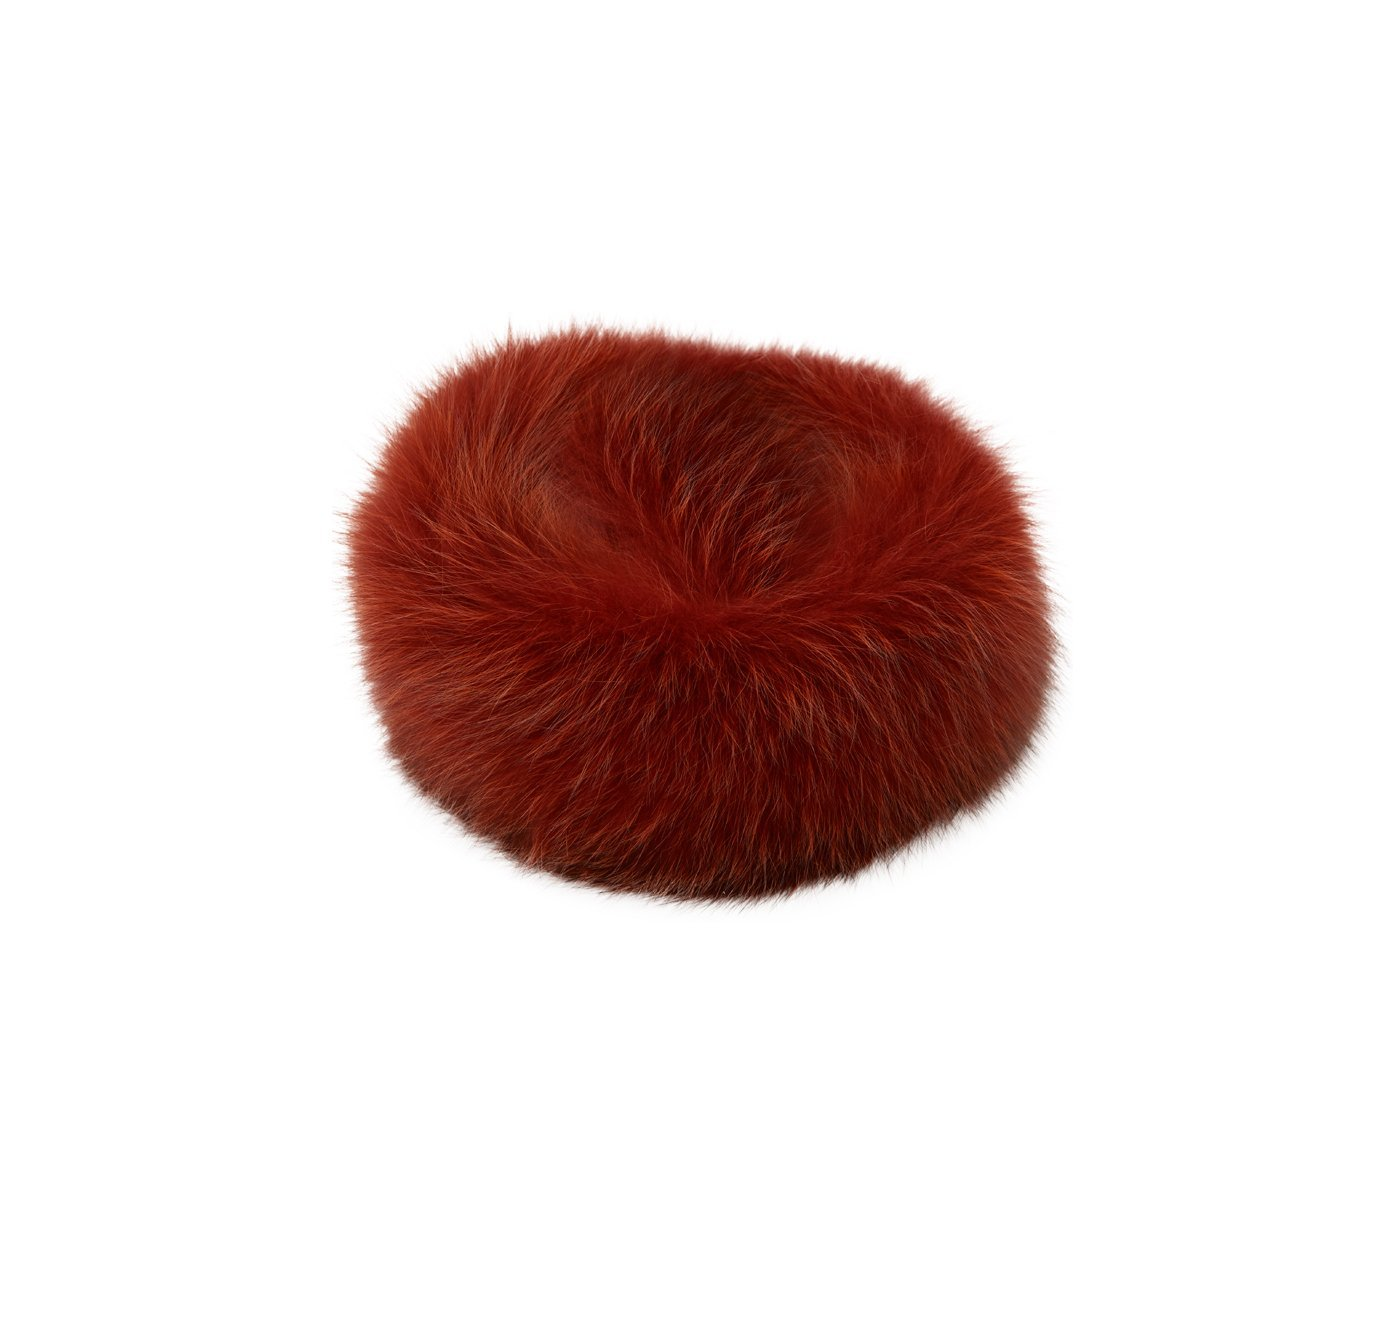 Product 4697288310870, FOX FUR SNOOD - LAPOINTE